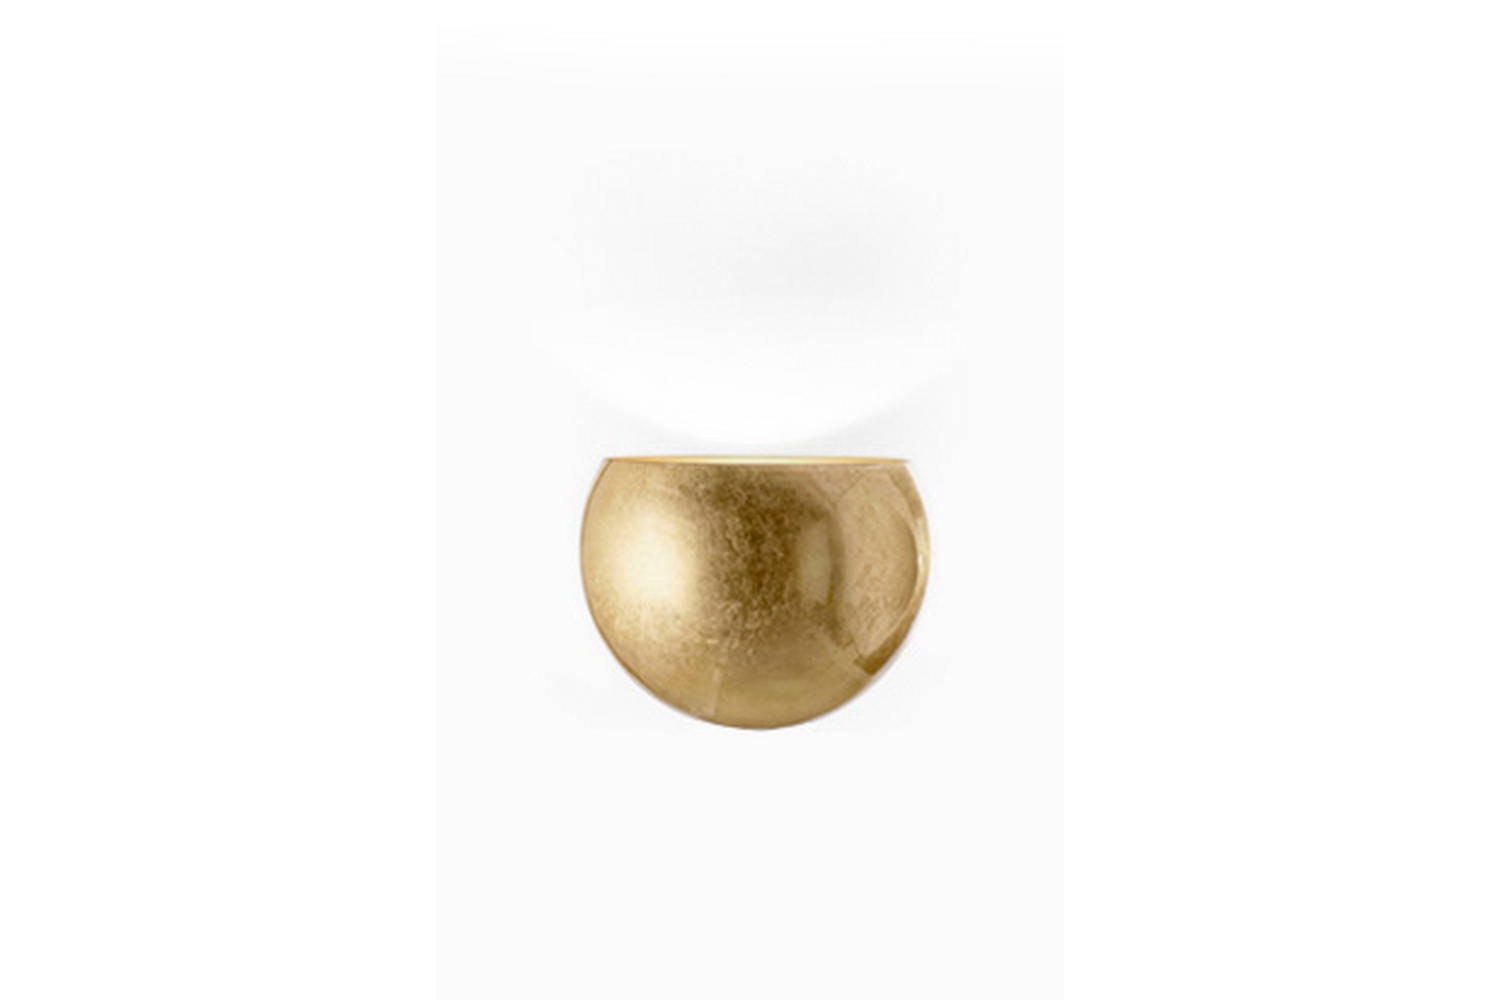 LAlampada Wall Lamp by Lapo Ciatti for Opinion Ciatti